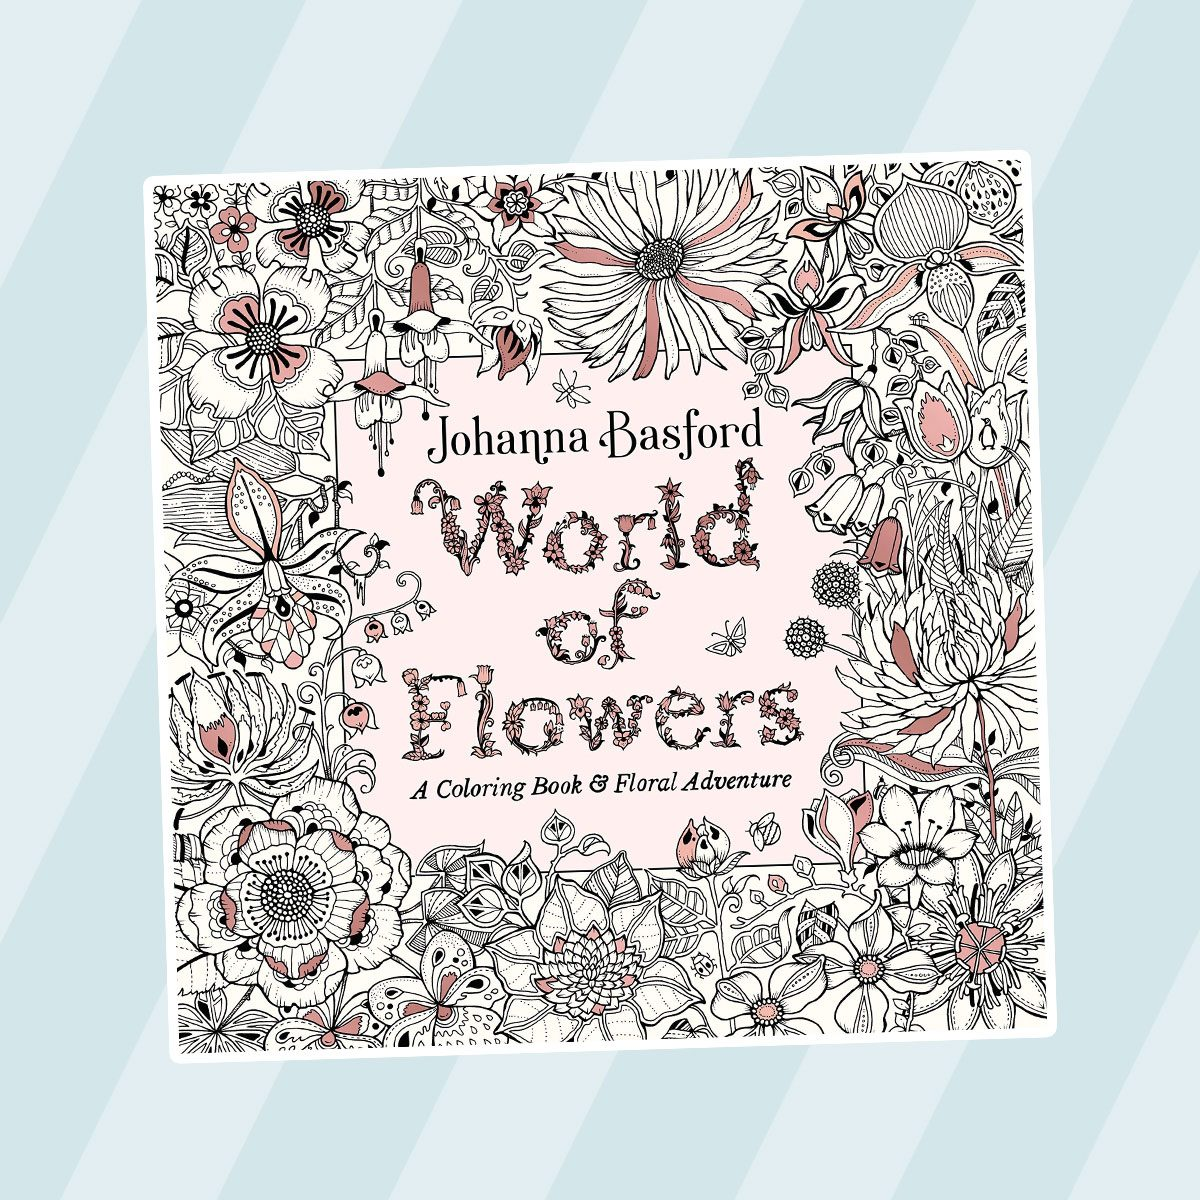 World Of Flowers gifts for friends